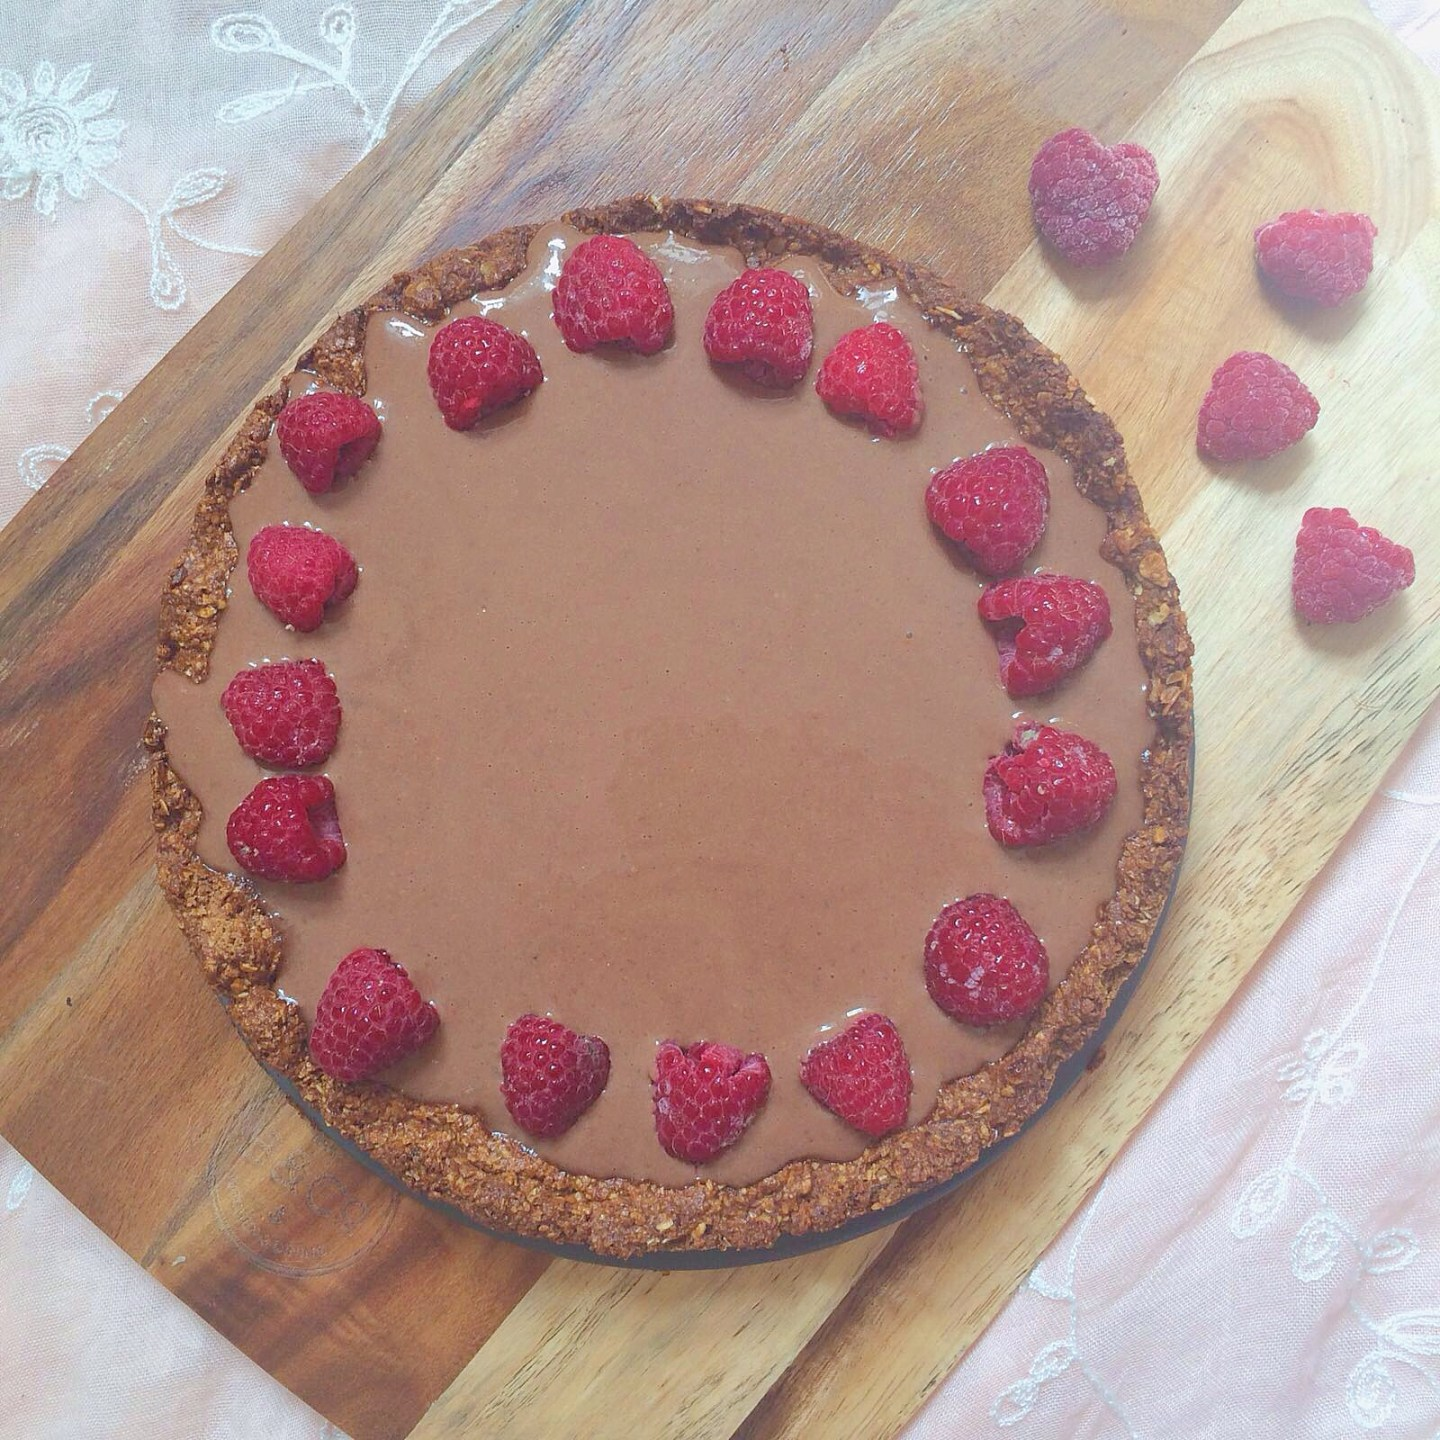 Chocolate Tart Recipe with Raspberry and Almond